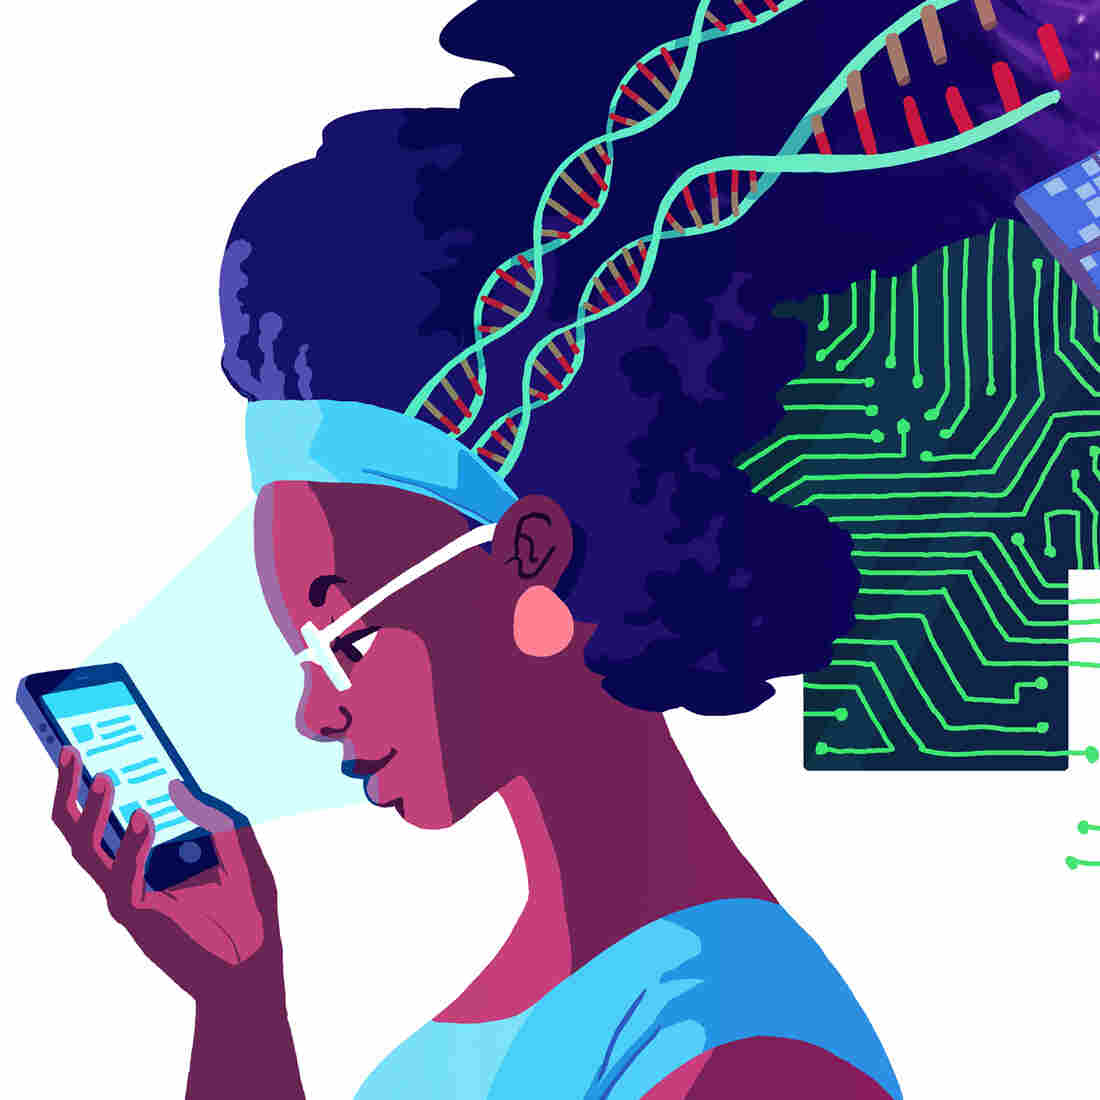 #RaceOnTech Explores Diversity In Tech And Science